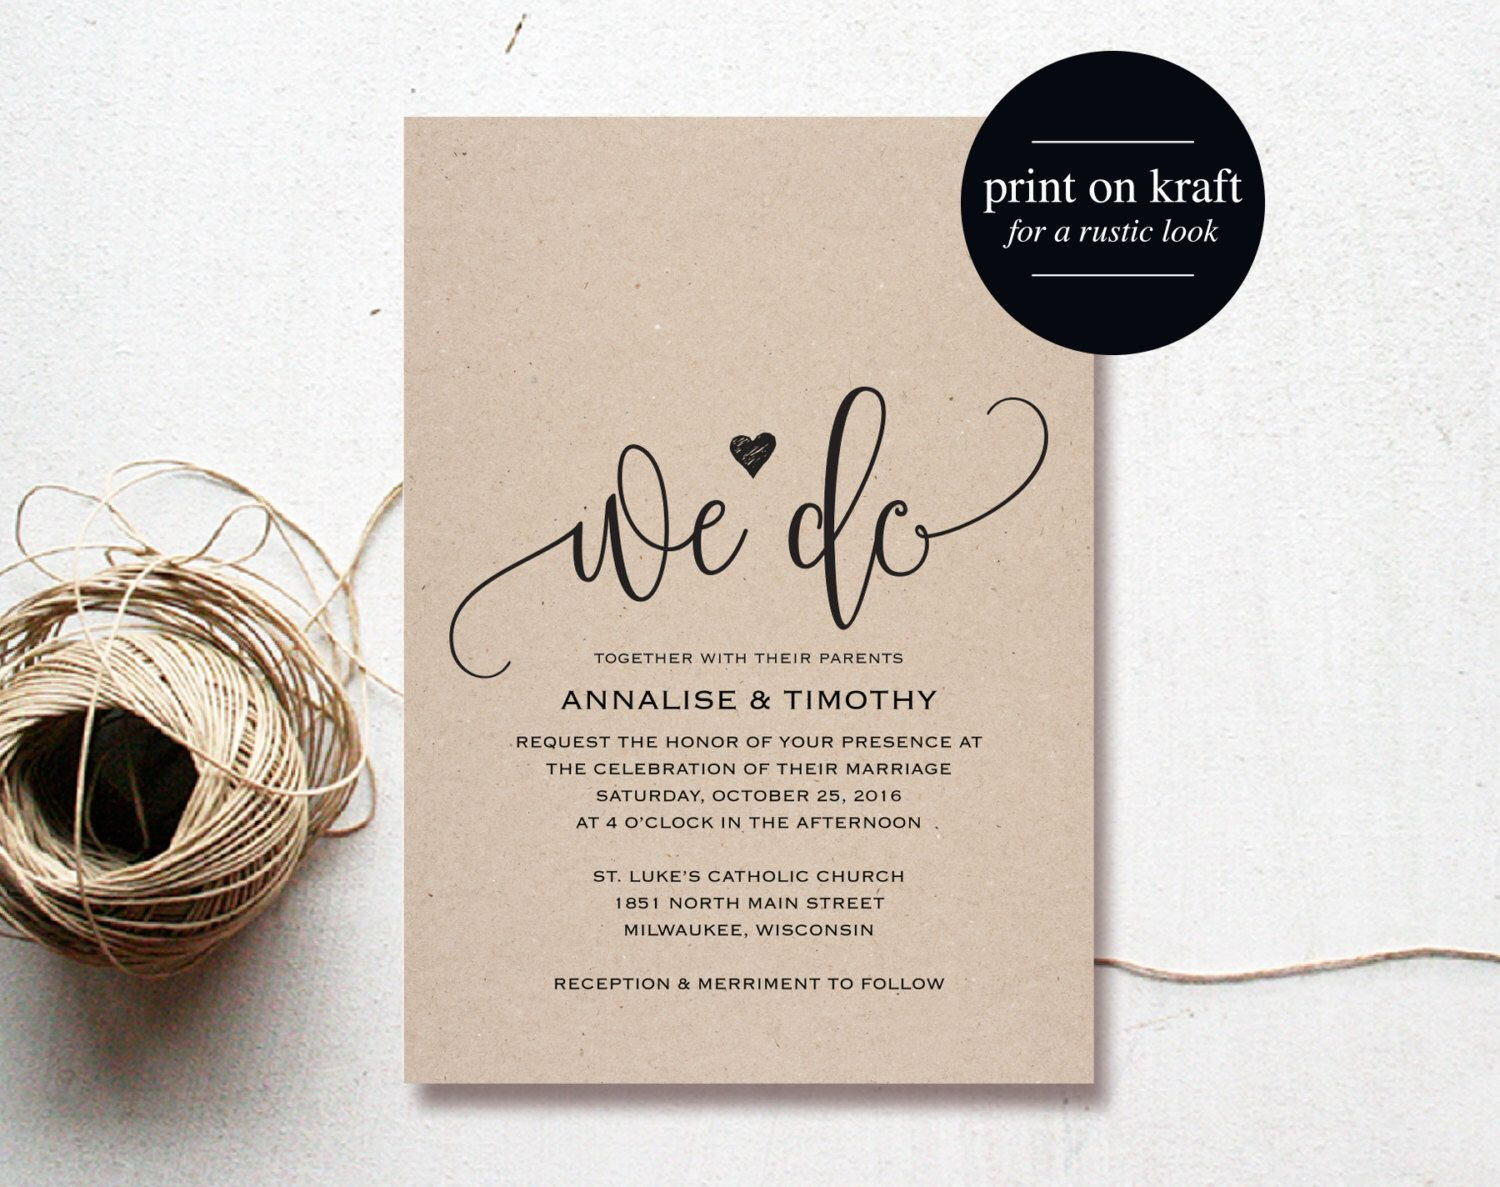 Cheap Wedding Invites Online: We Do Wedding Invitation Template, Rustic Kraft Invitation